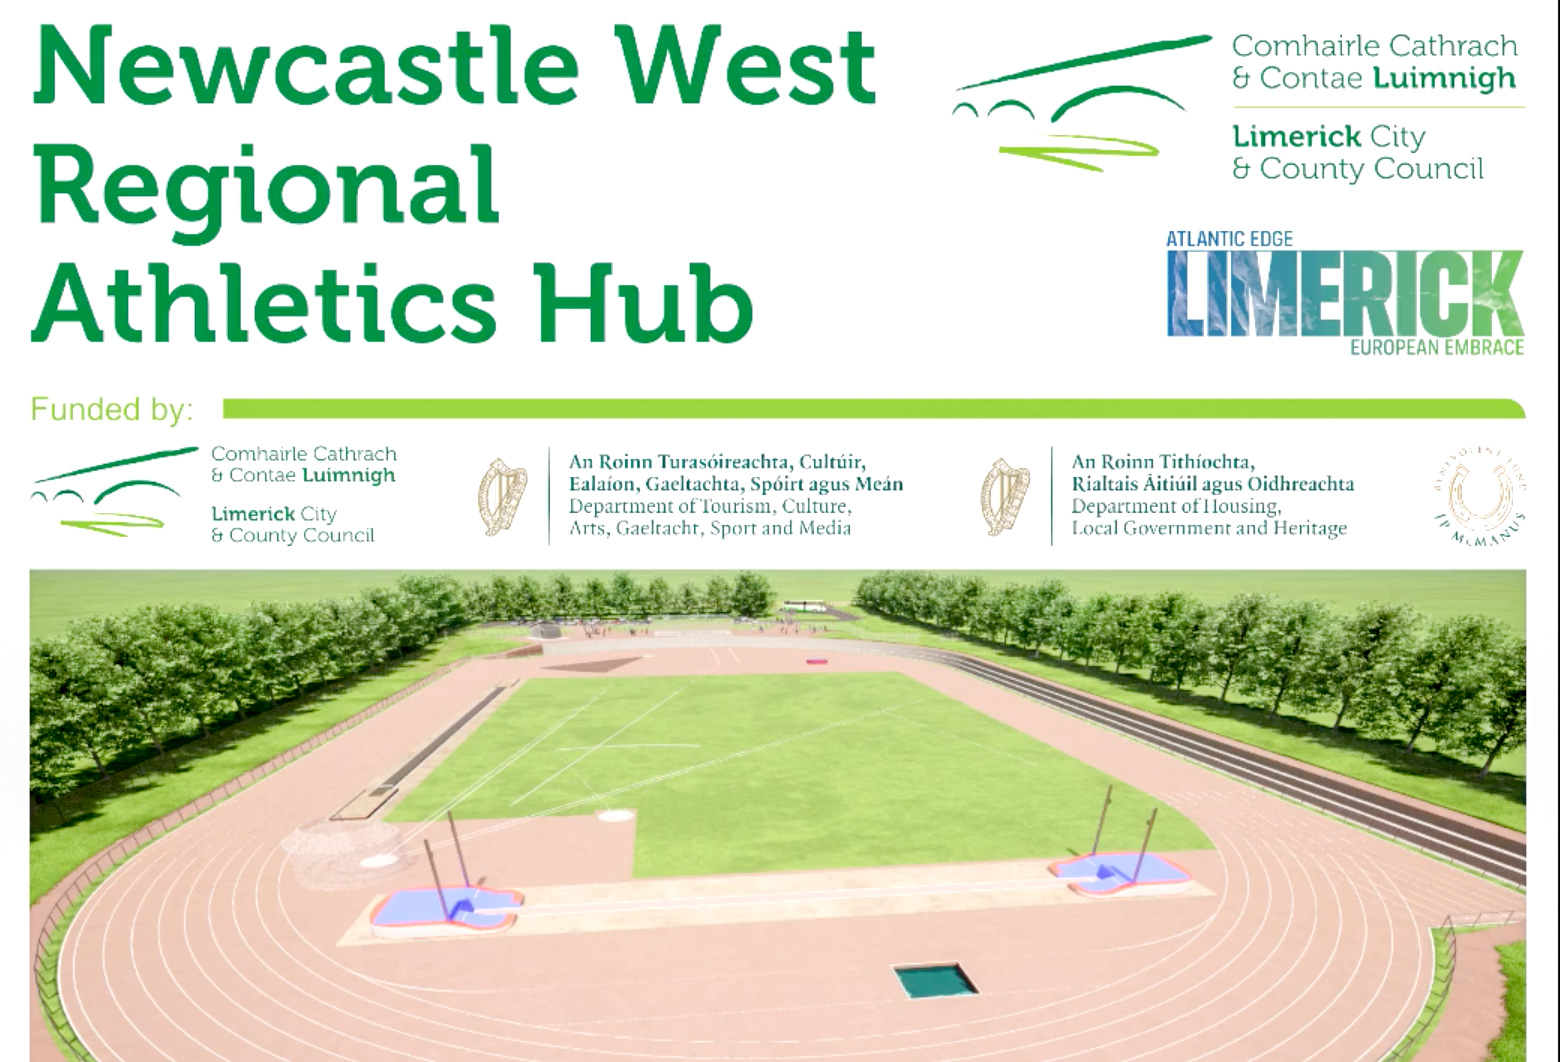 Newcastle West Regional Athletics Hub